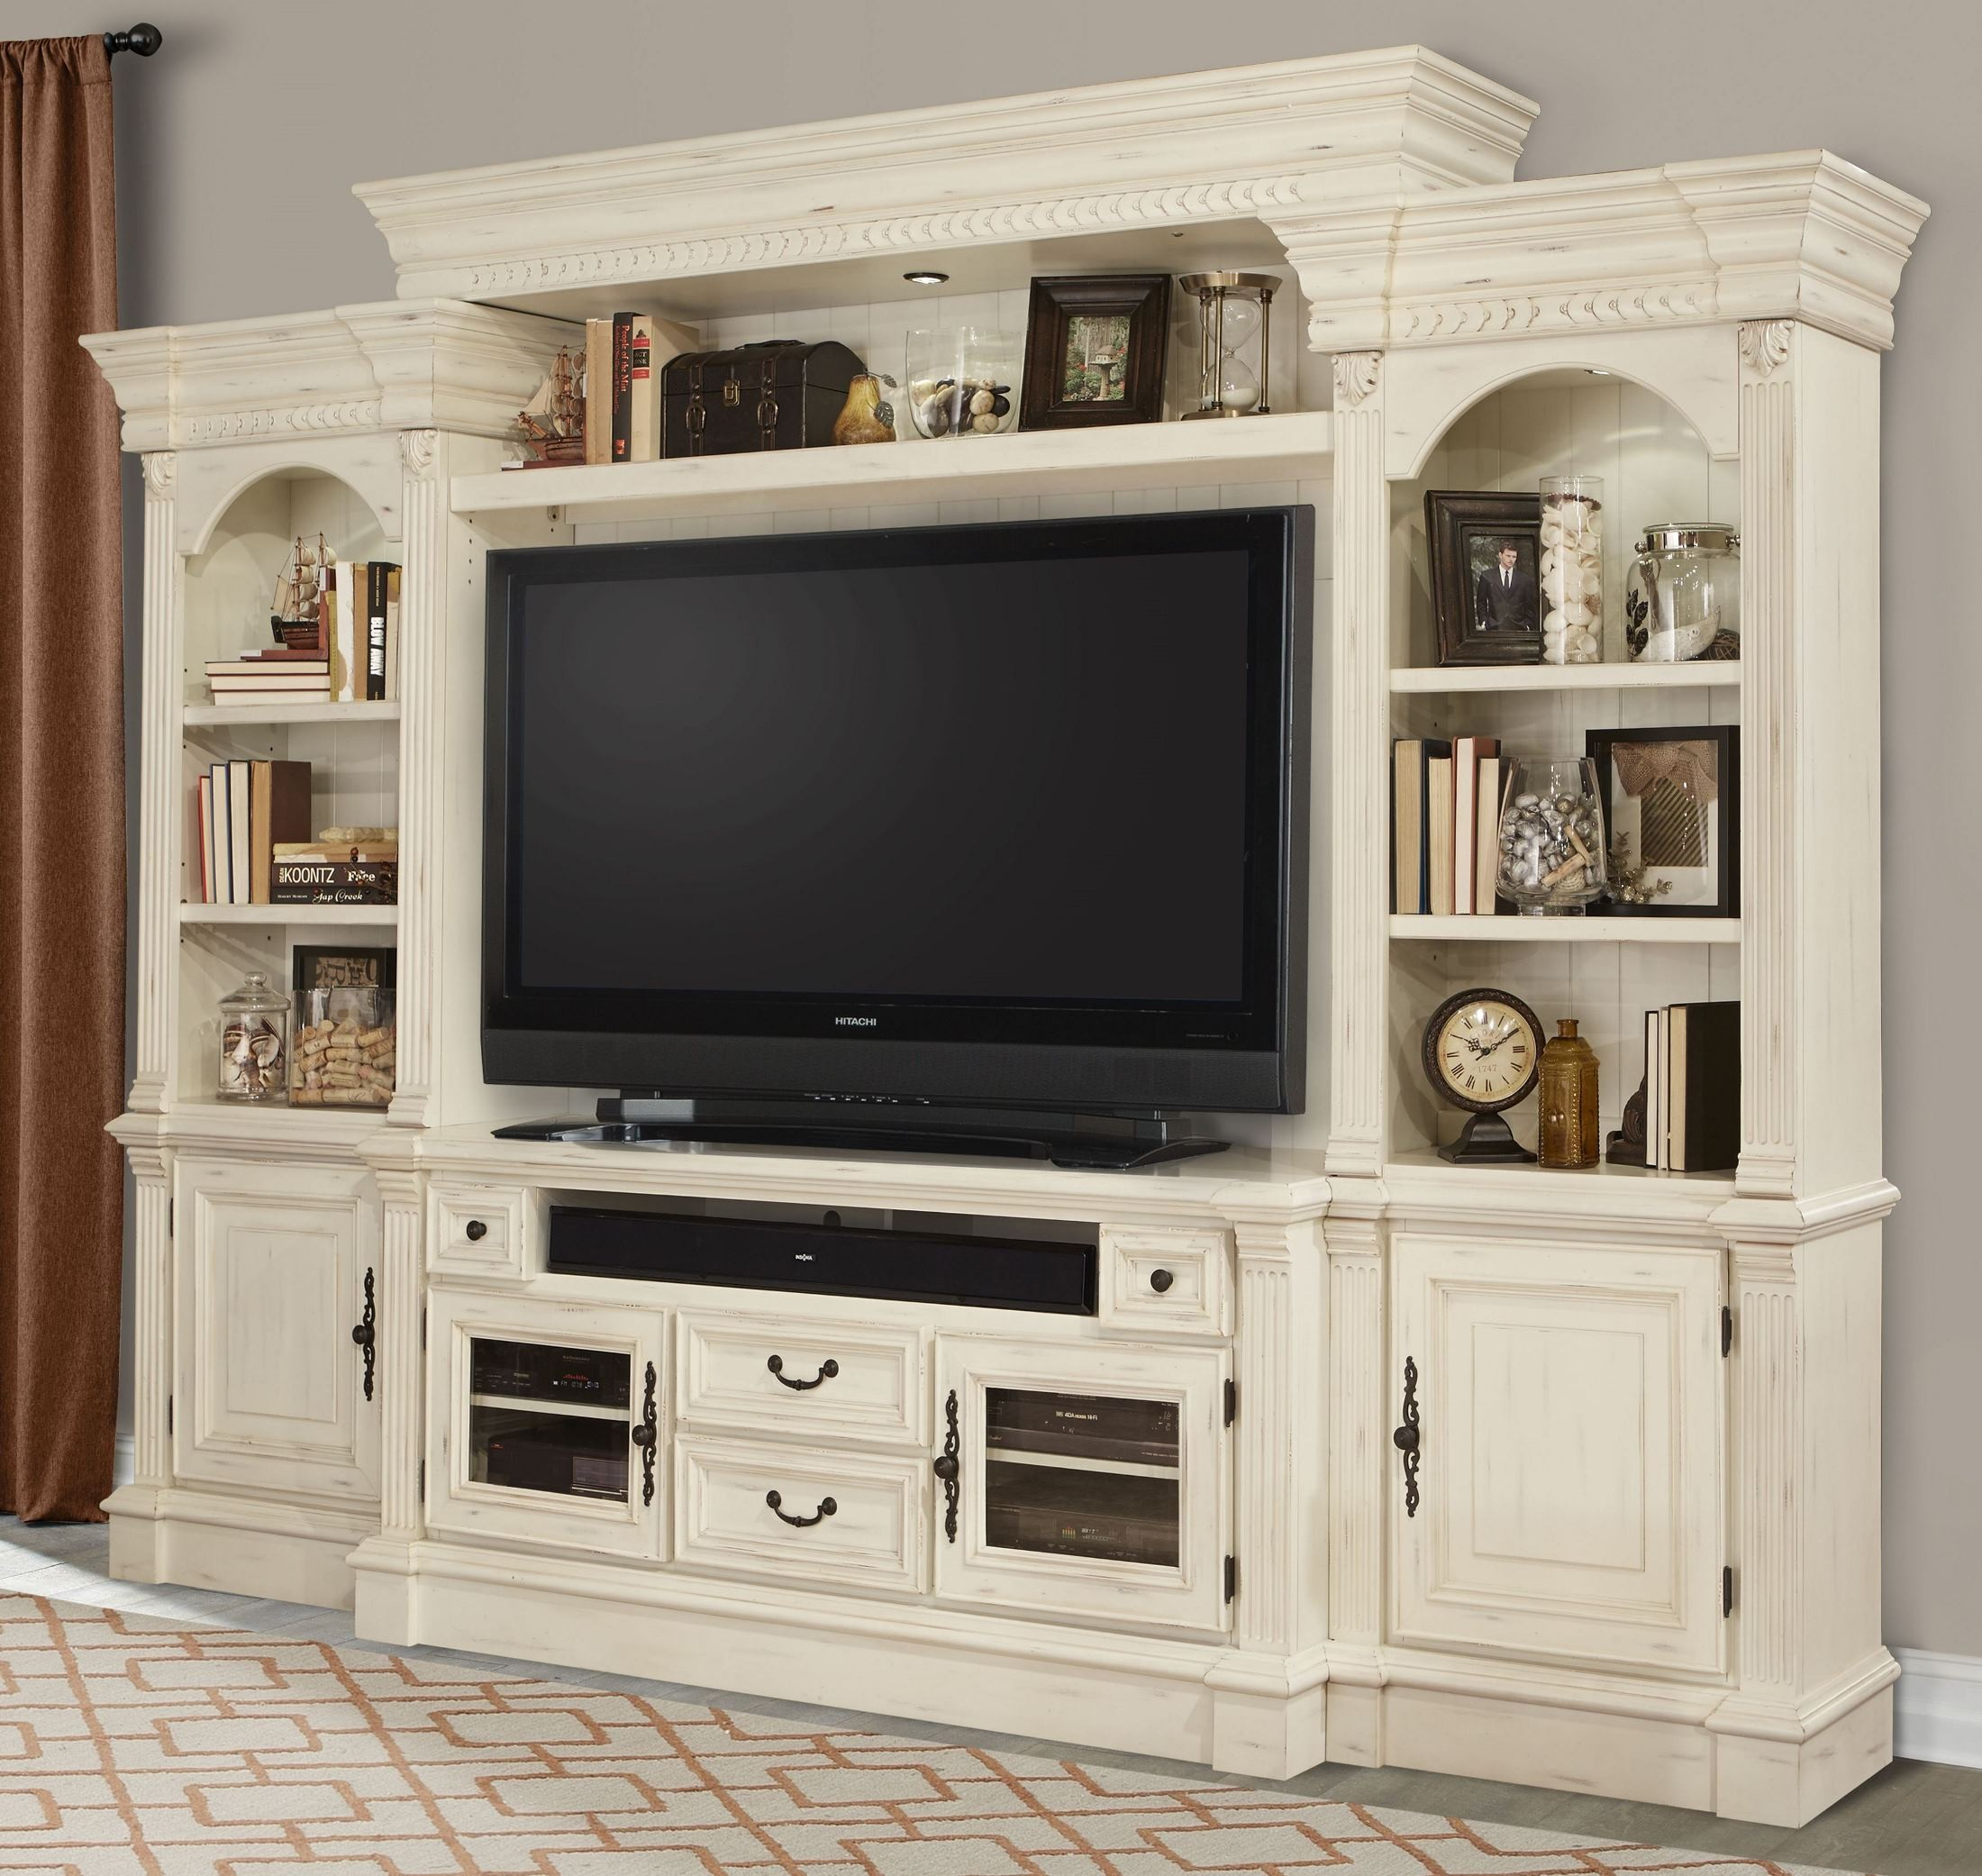 Transitional Kitchen Designs Photo Gallery moreover Library Window Seat moreover Pallet Coffee Table Gallery likewise 28496 Tv Wall Units Living Room Transitional With Unit Modern Entertainment Centers And T additionally Fremont Antique Burnished White 4pc Entertainment Wall. on transitional style entertainment center